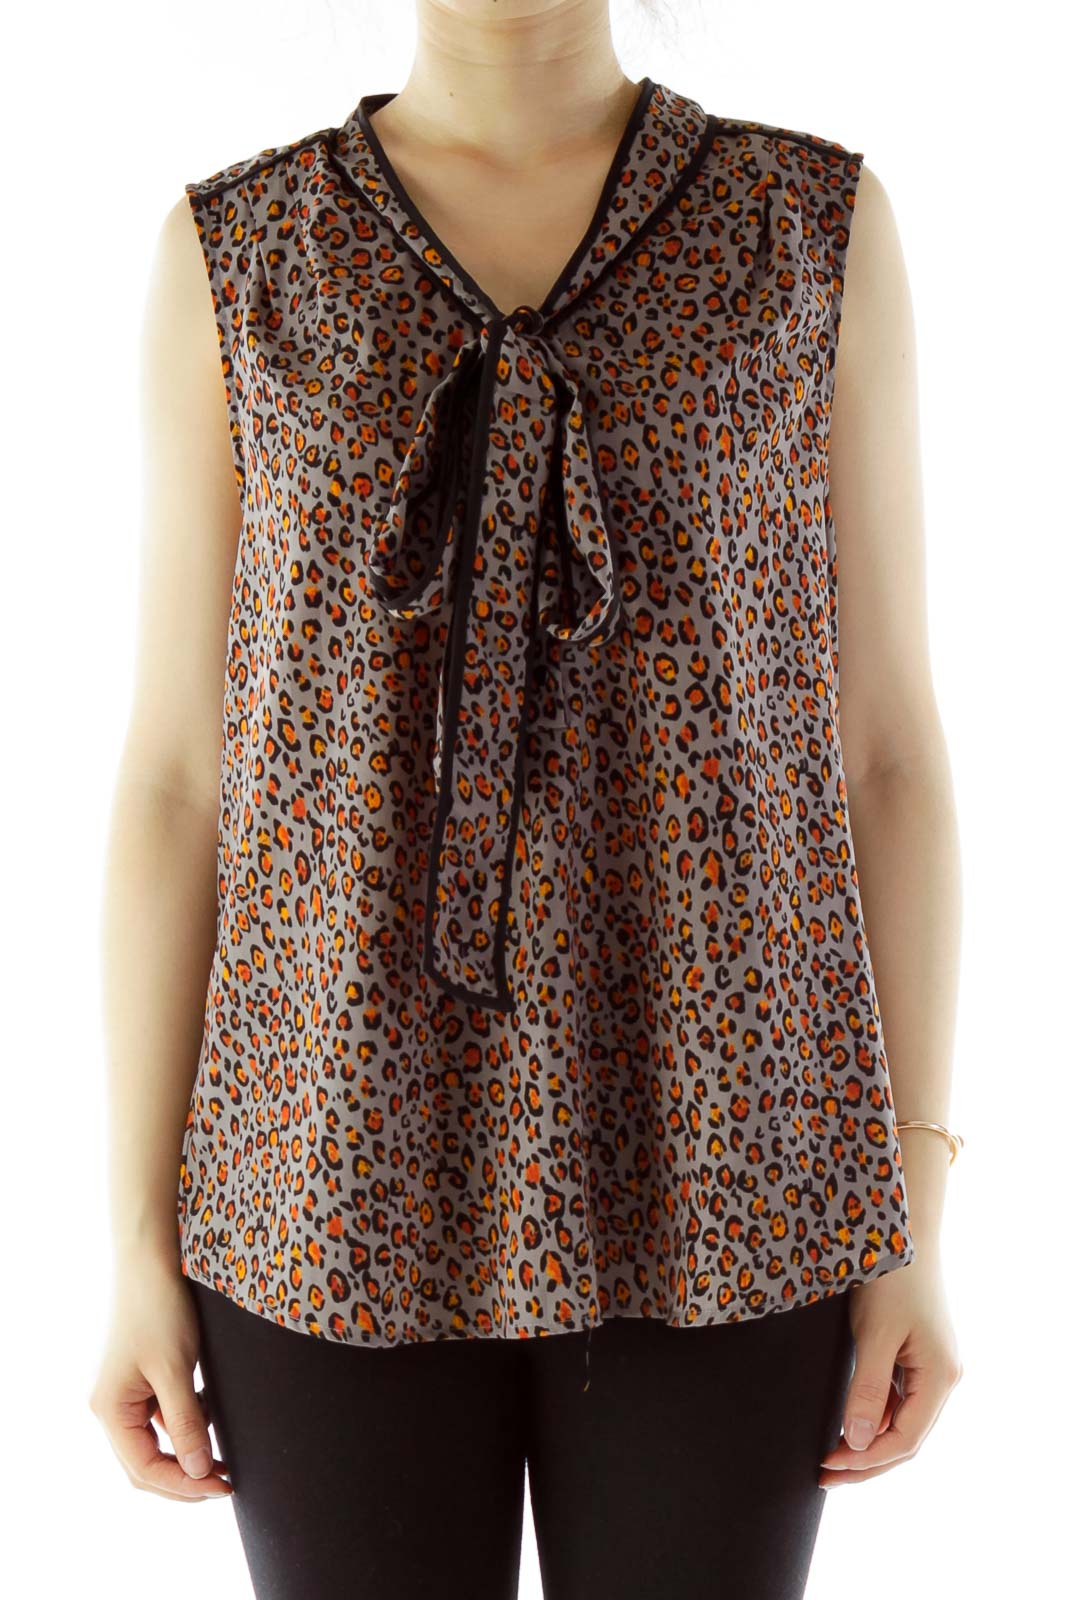 Gray Leopard Sleeveless Blouse With Sash Detail